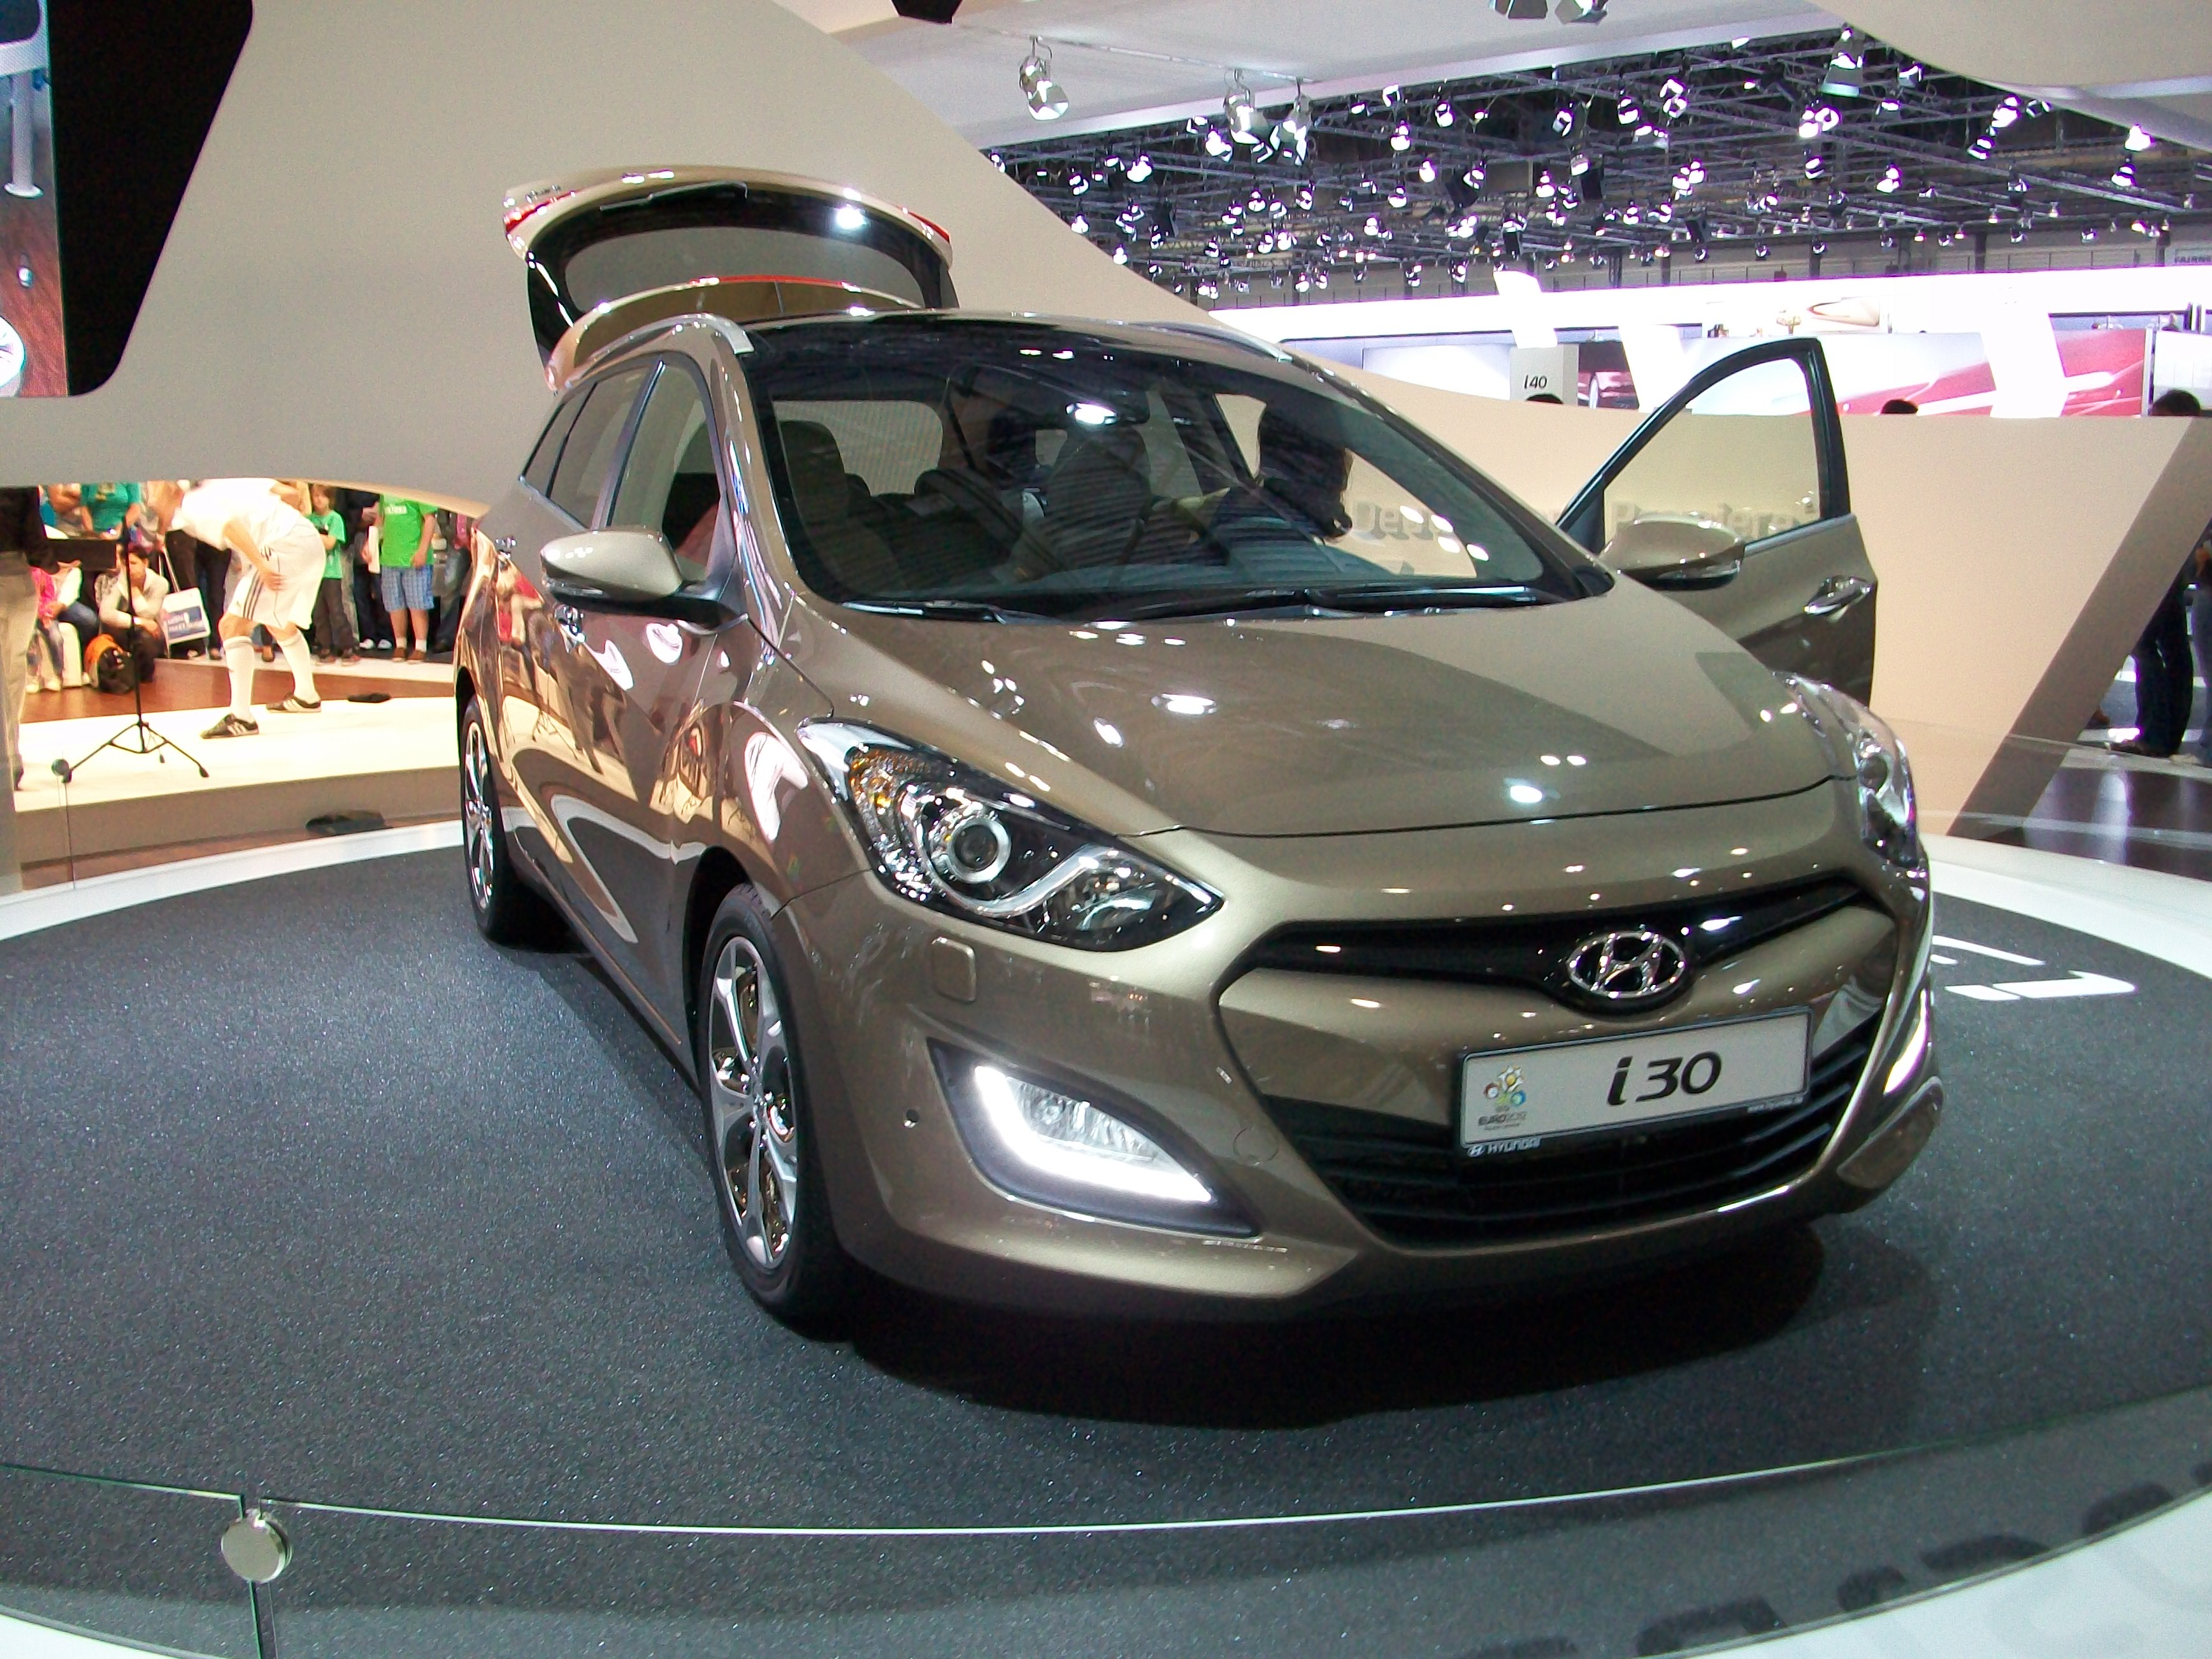 2014 hyundai i30cw pictures information and specs. Black Bedroom Furniture Sets. Home Design Ideas